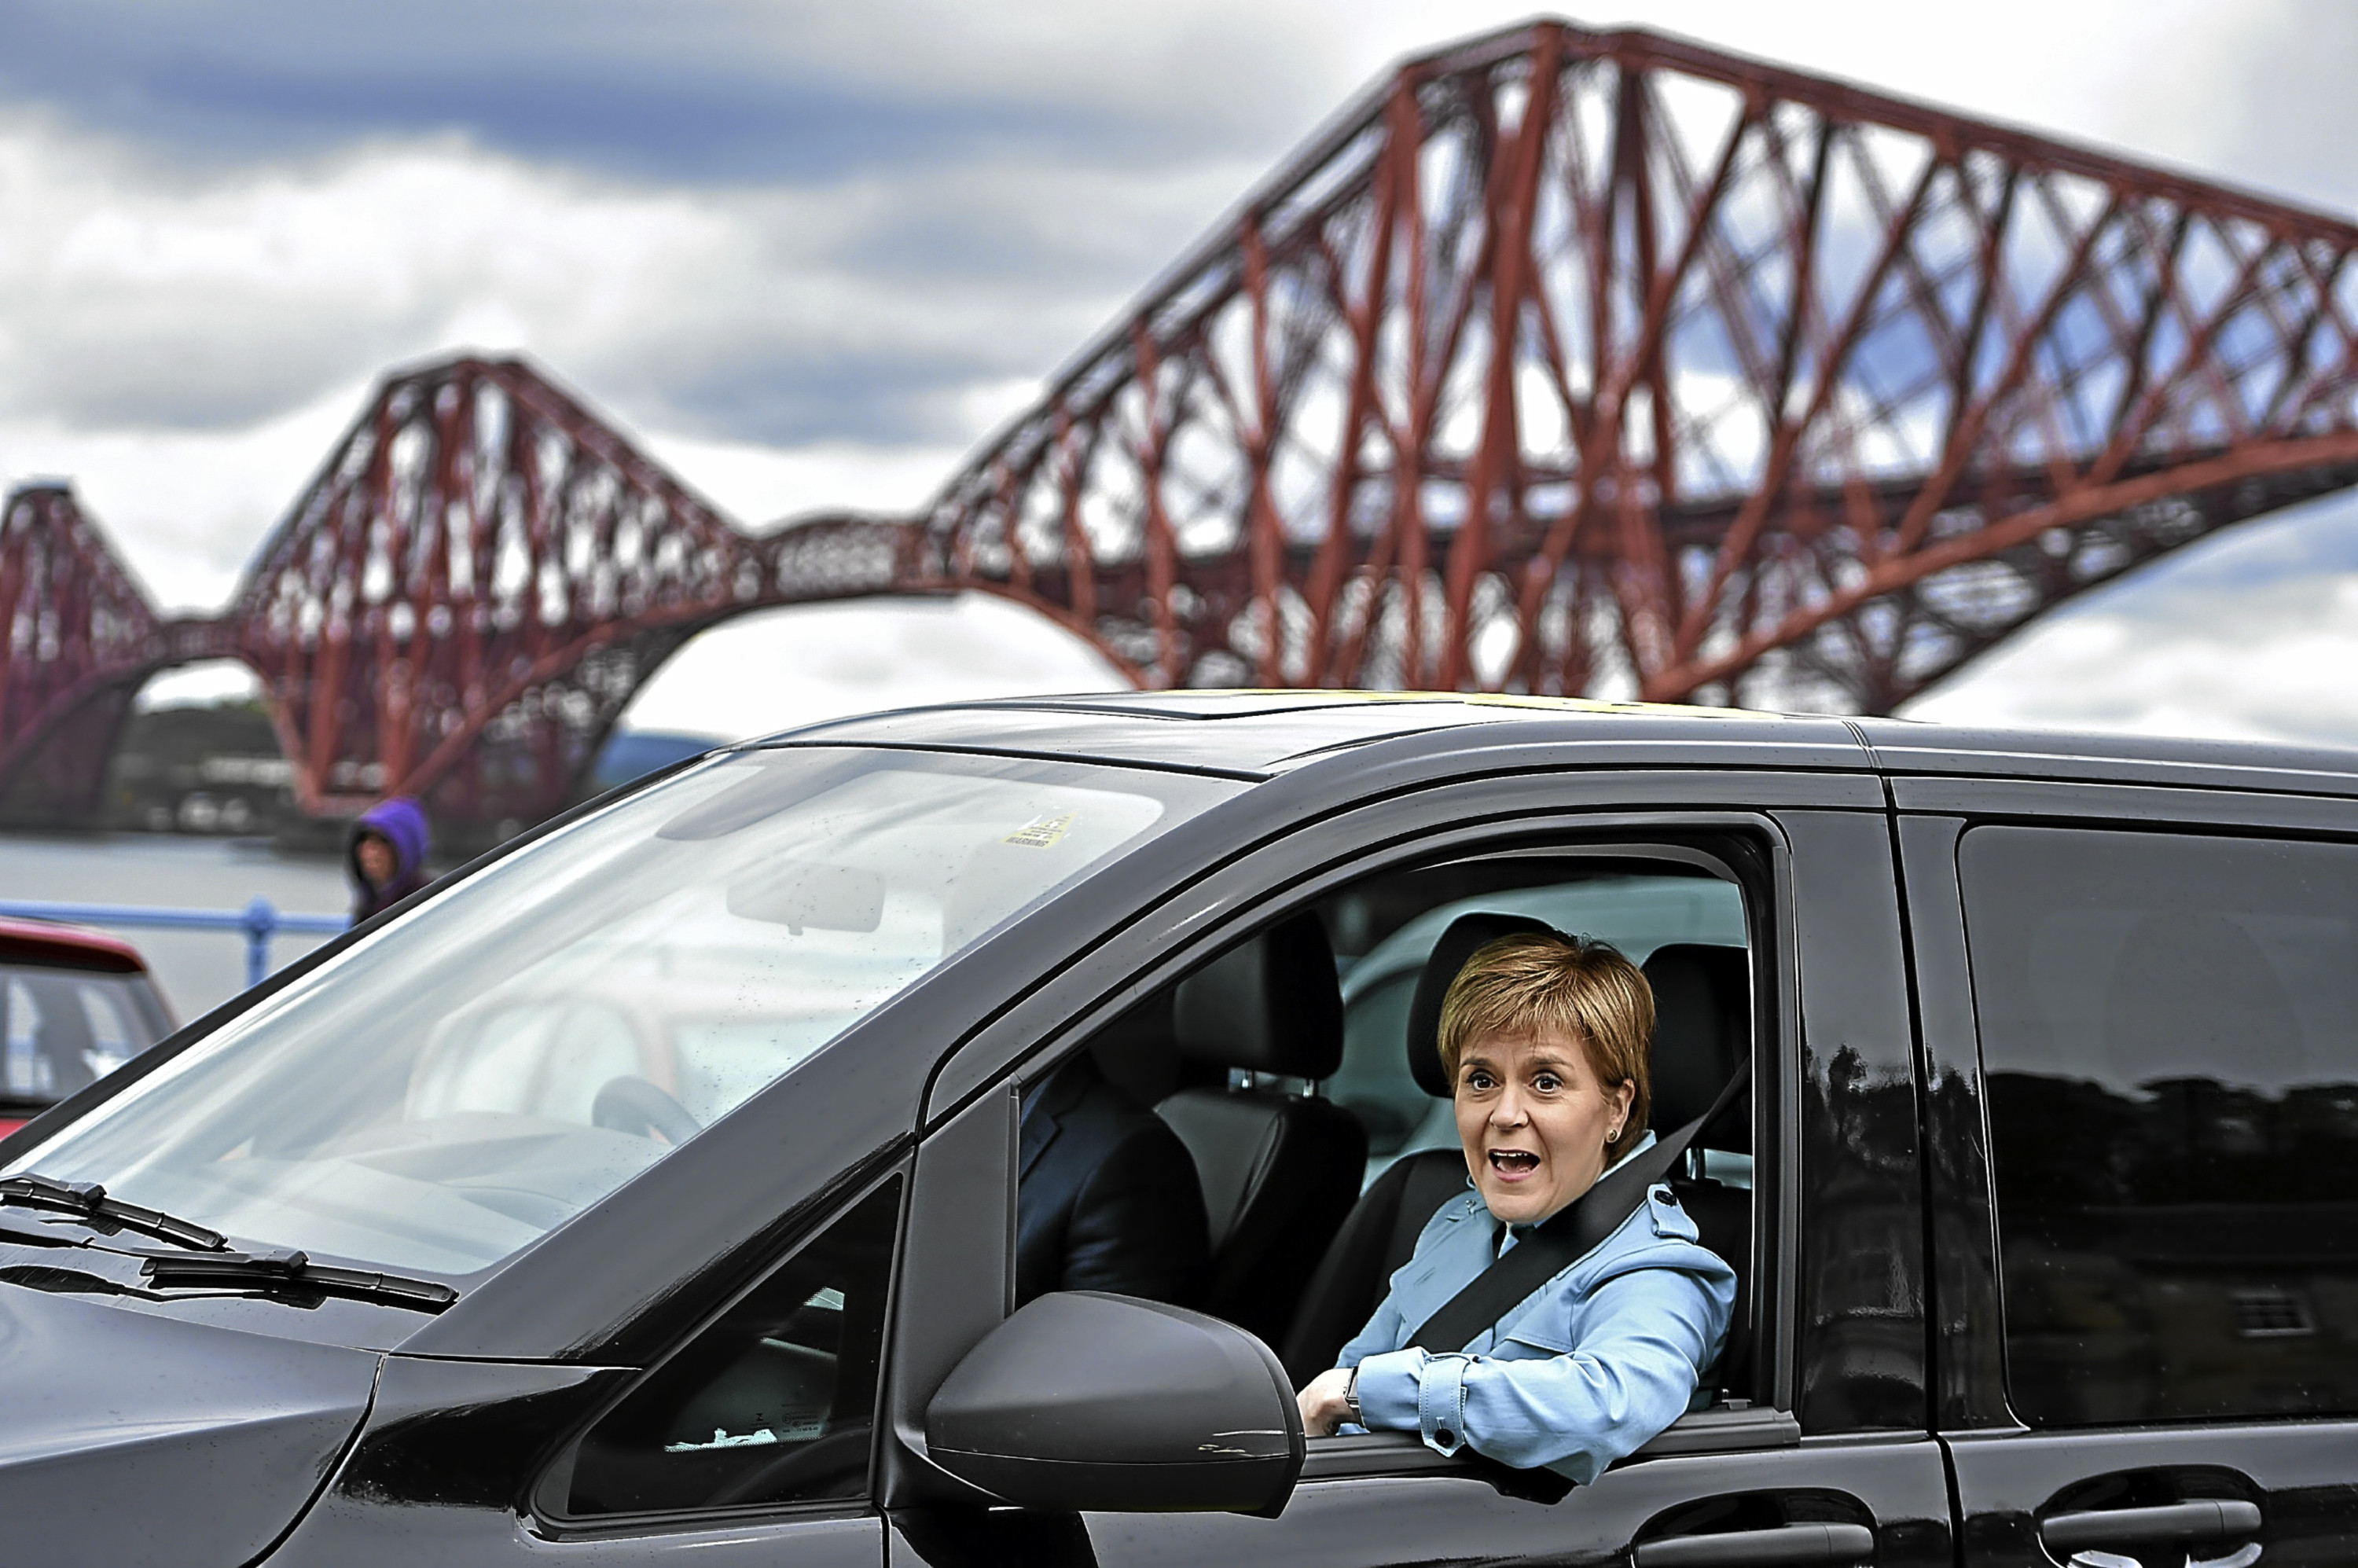 Nicola Sturgeon, seen campaigning in South Queensferry, has not ruled out another independence vote.